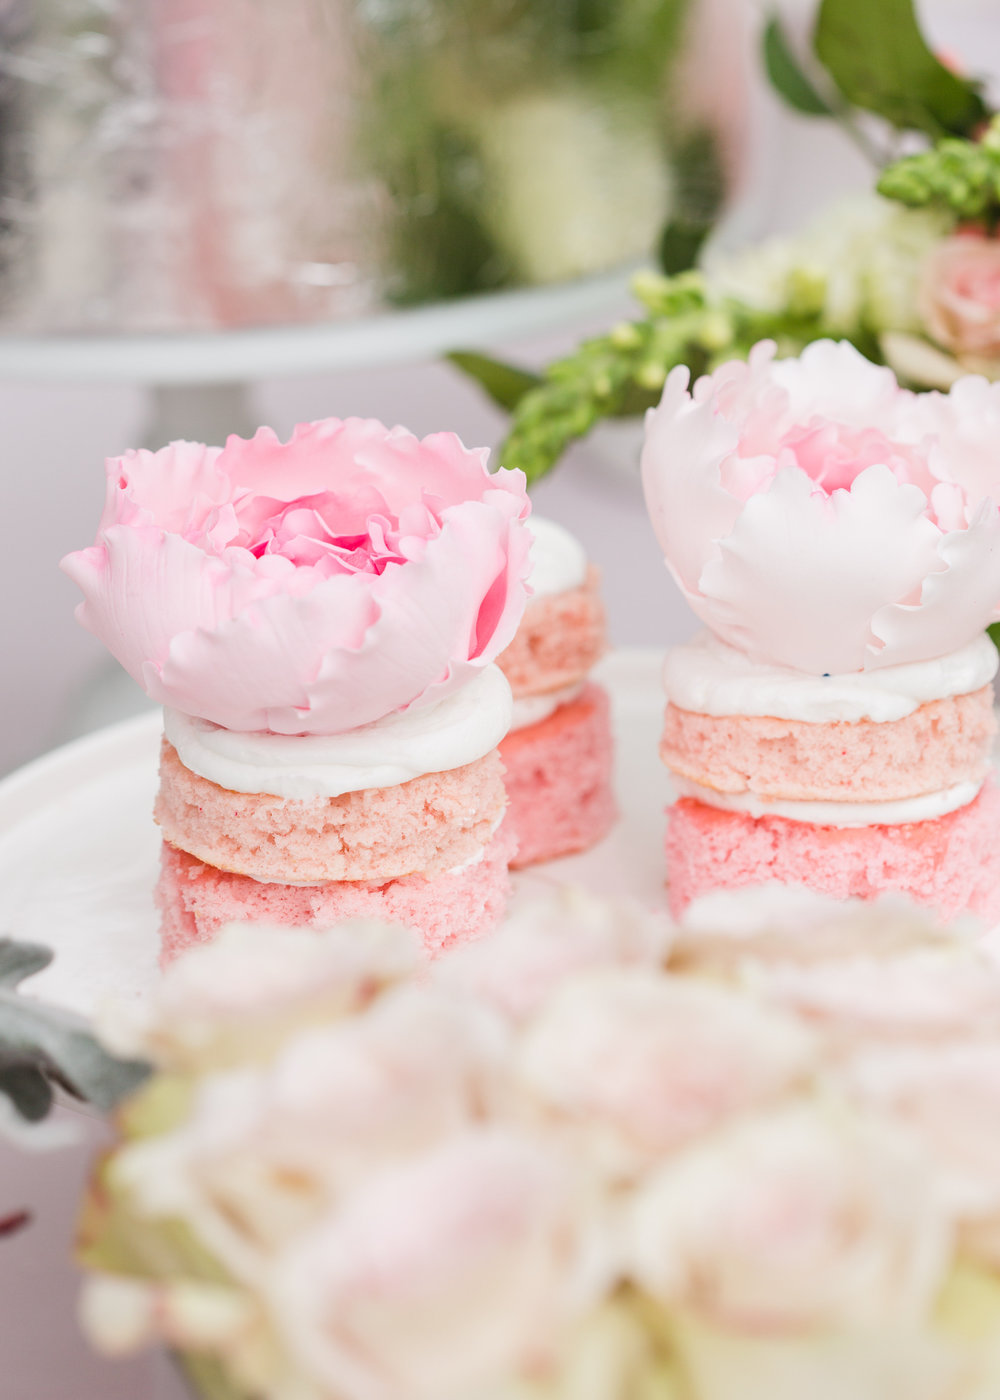 Cakes and Sweets-0127.jpg